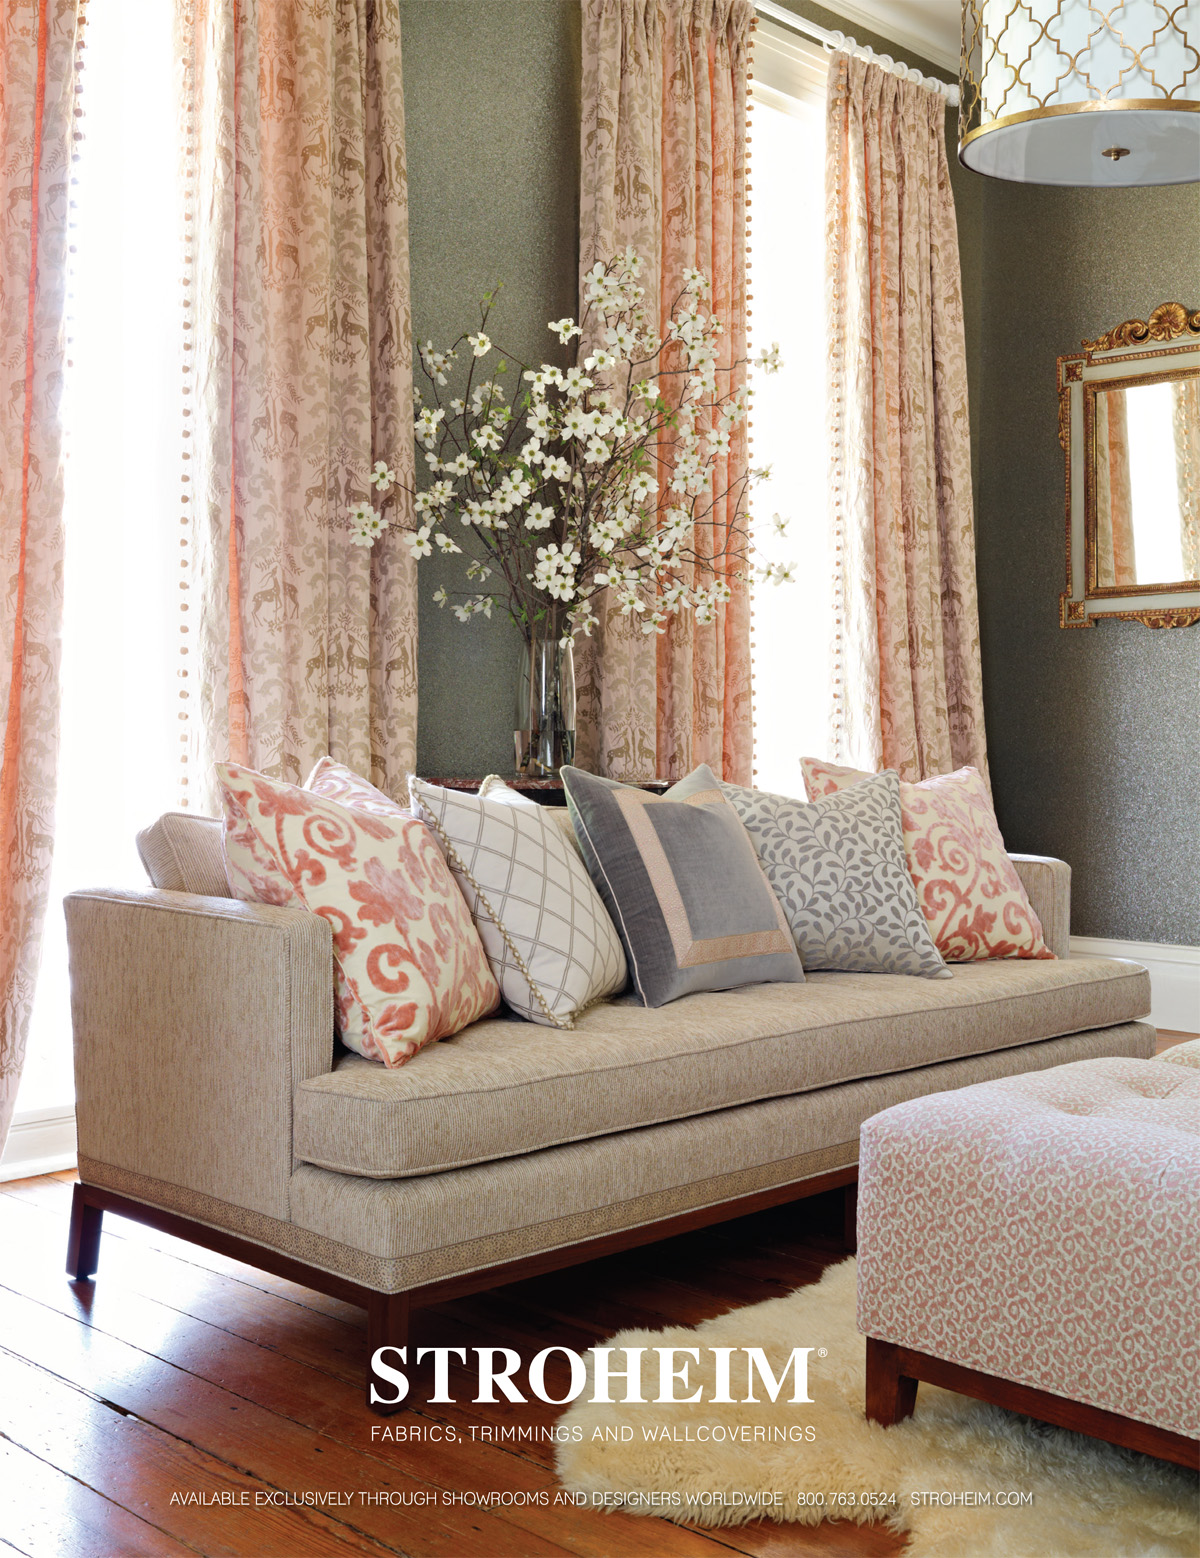 Stroheim On Trend And In The Pink Stonemill